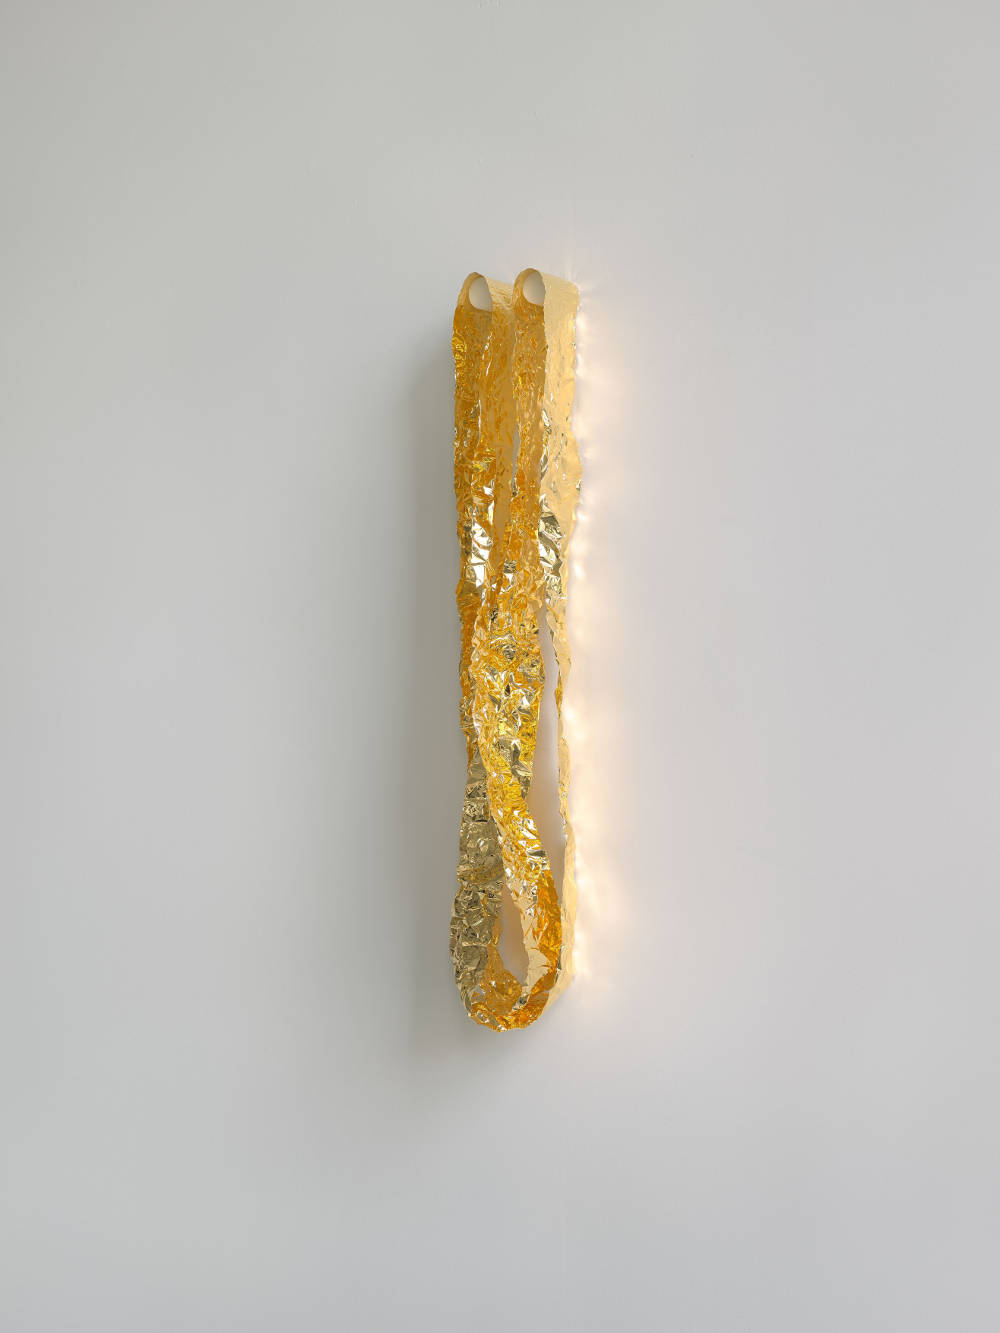 "Roni Horn, Double Mobius, v. 2, 2009/2018. Gold foil: ""4 Nine"" pure (with 2 plastic pegs) Ed. 1/3. Ribbons: 6.4 x 152.4 x 0.002 cm / 2.5 x 60 x 0.0008 in each, 2 parts. Installed: 6.4 x 76.2 x 5 cm / 2.5 x 30 x 2 in (overall)"